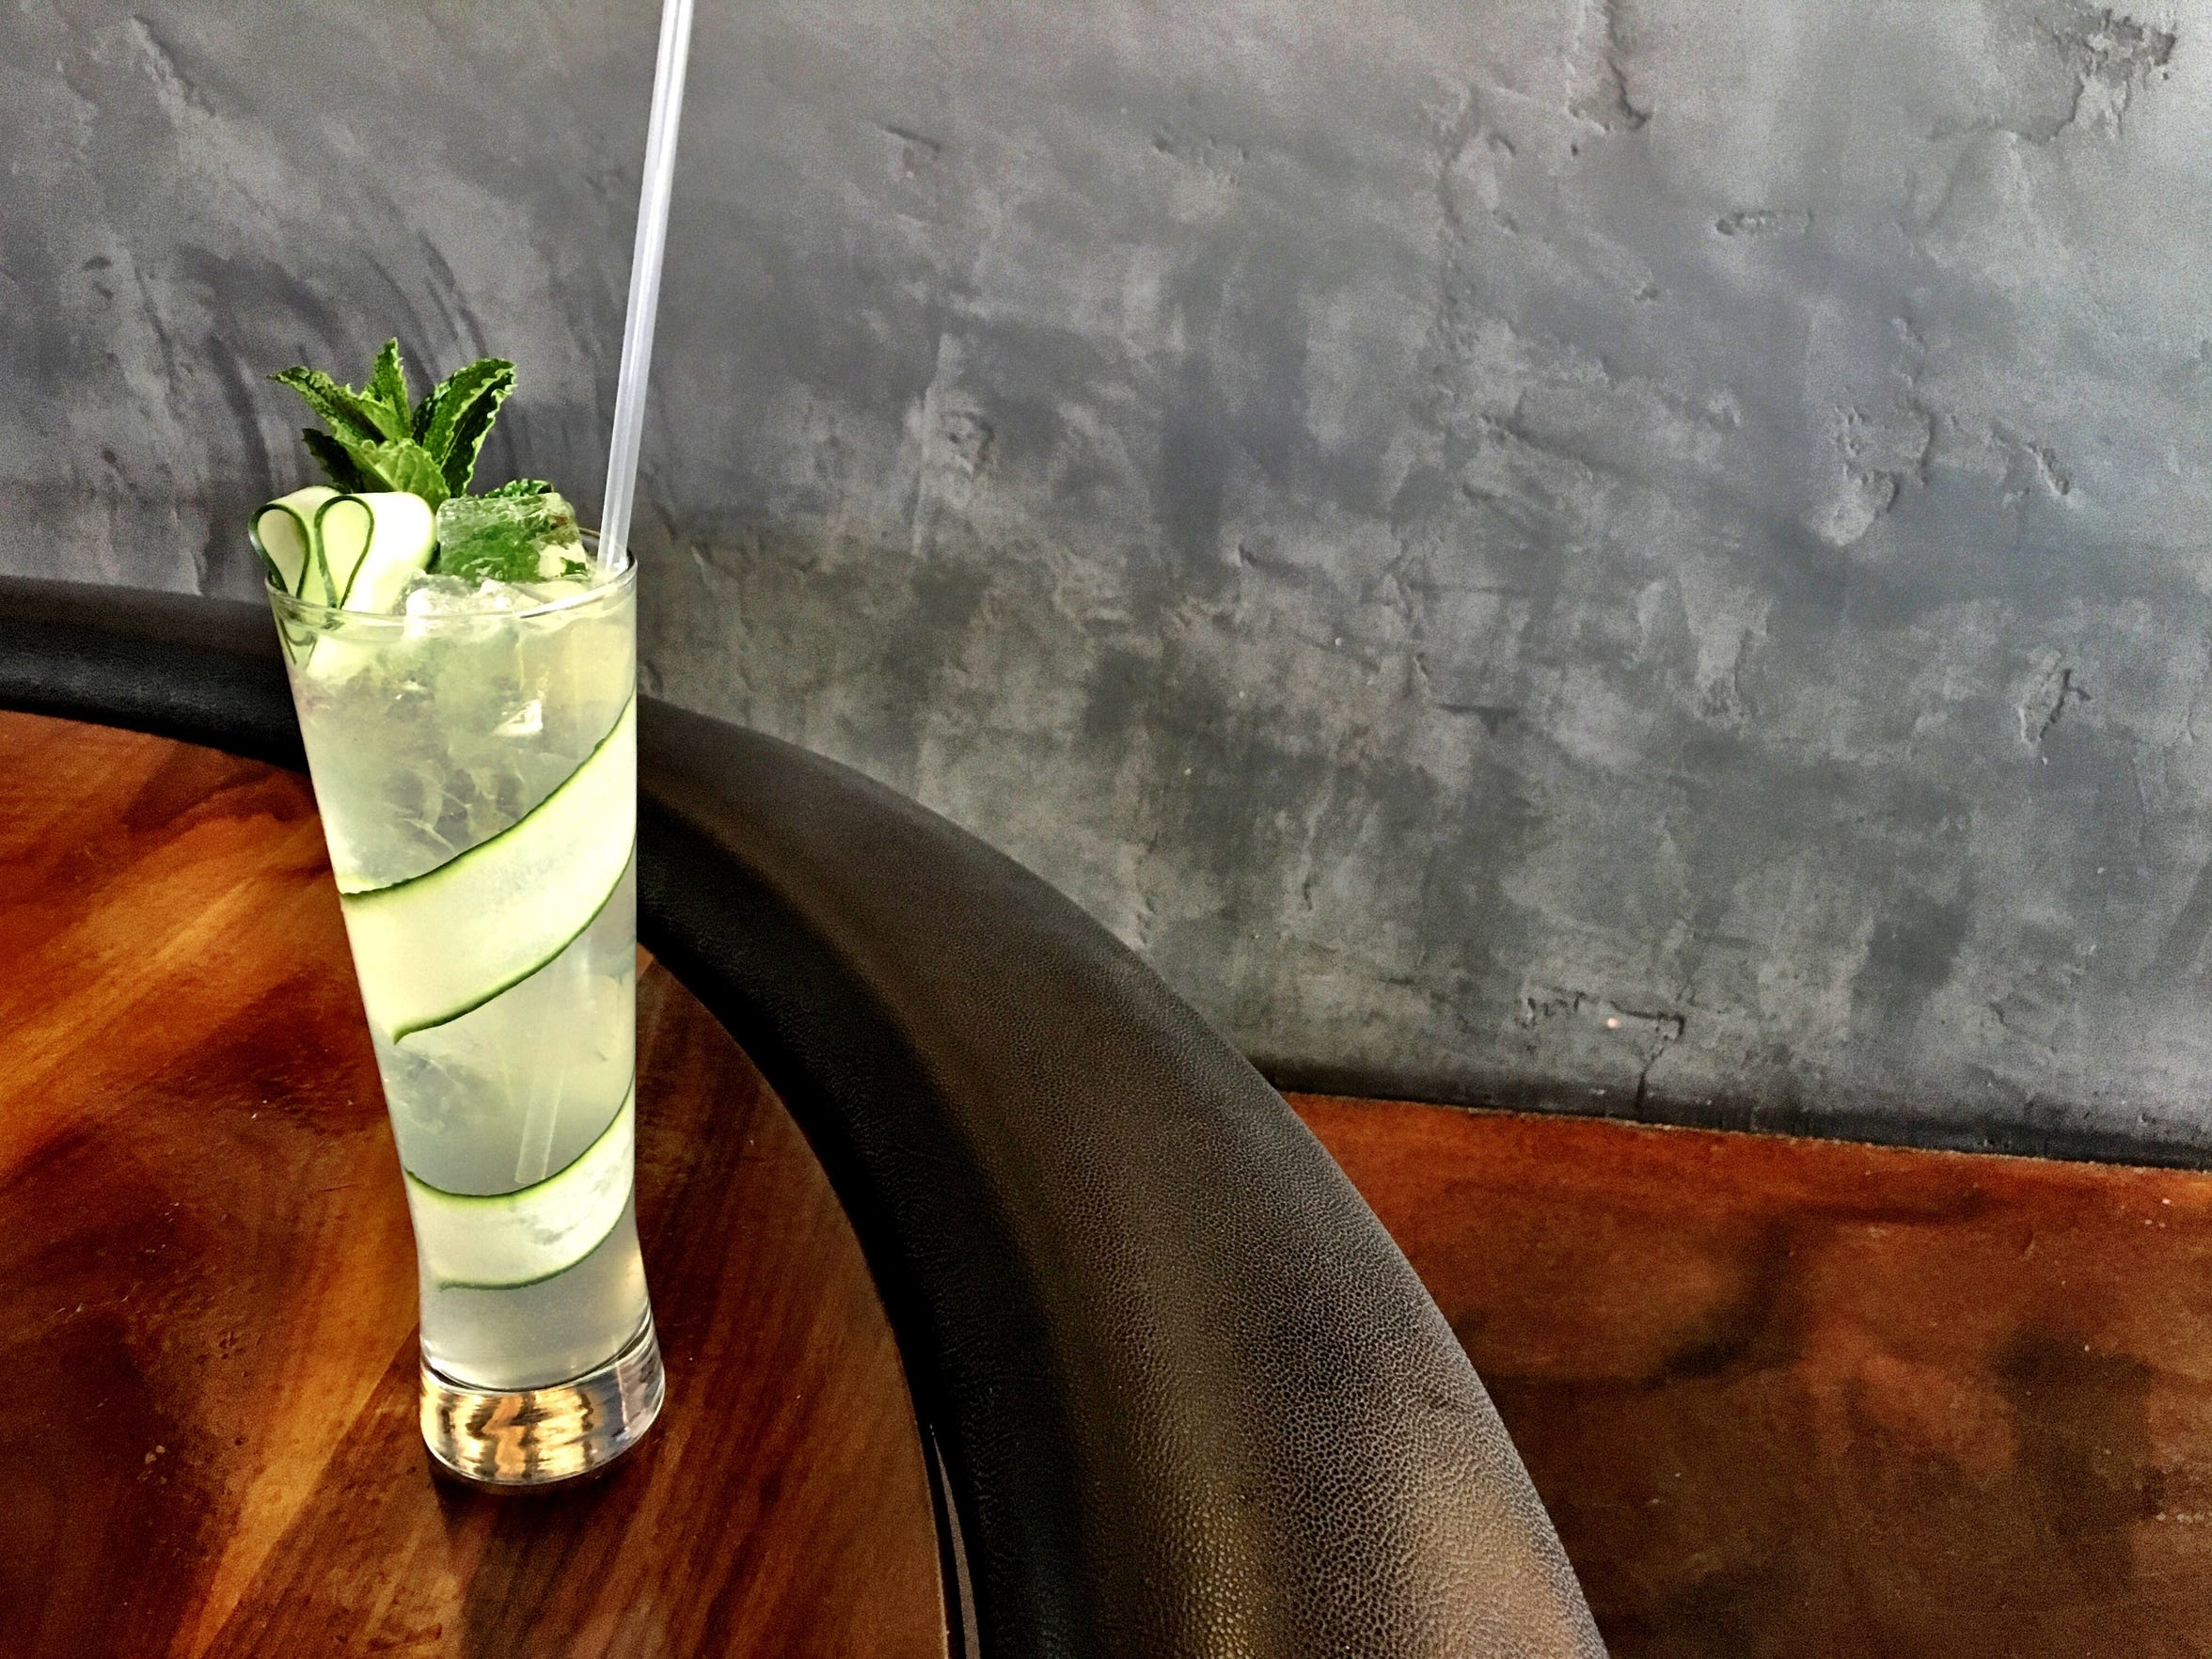 The Cucumber Spritz is a non-alcoholic drink at Bitter